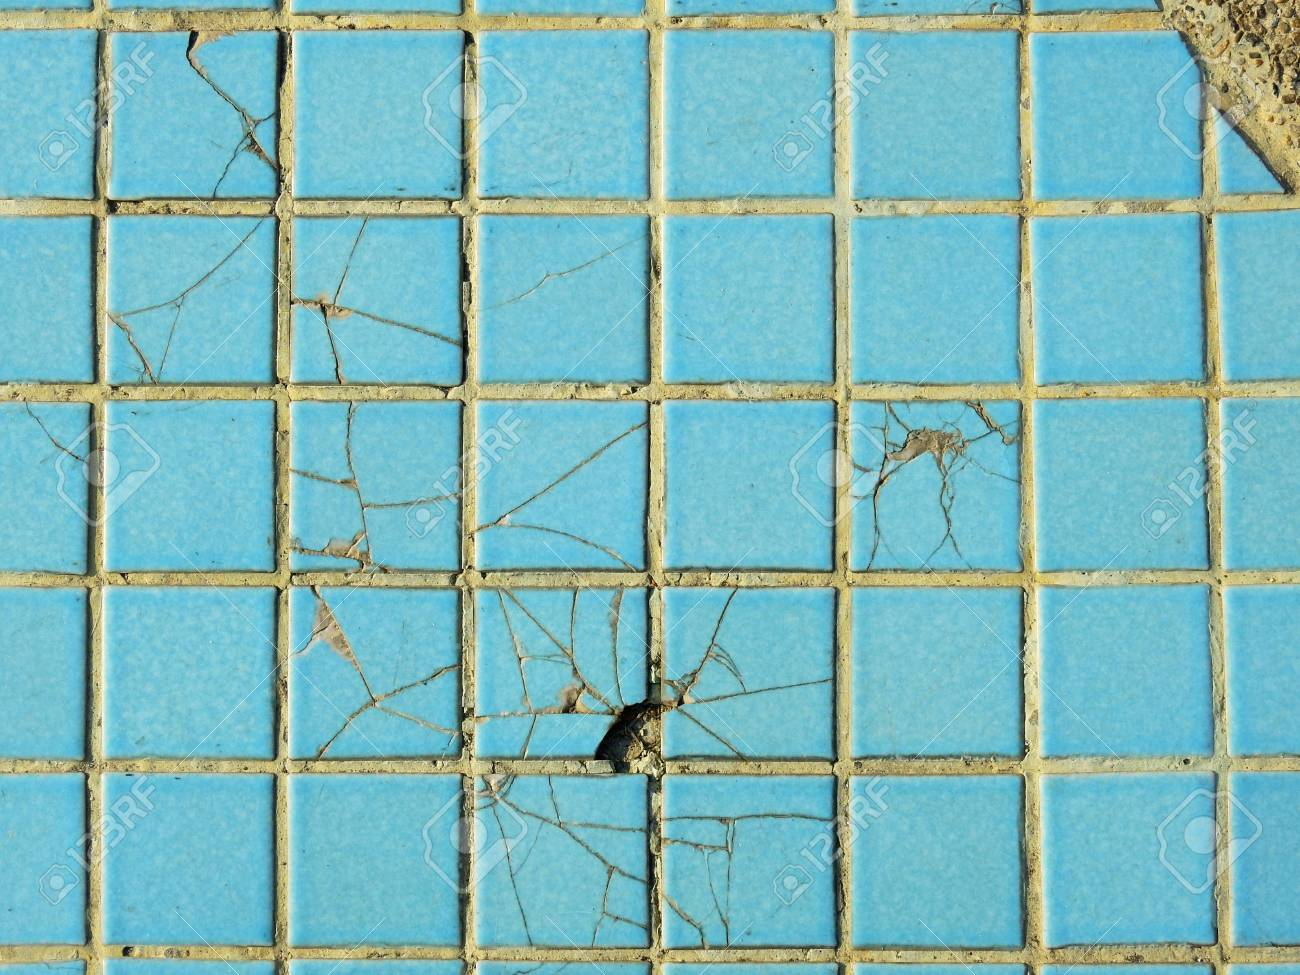 Old Blue Ceramic Tile Floor With Crack Texture Stock Photo, Picture ...